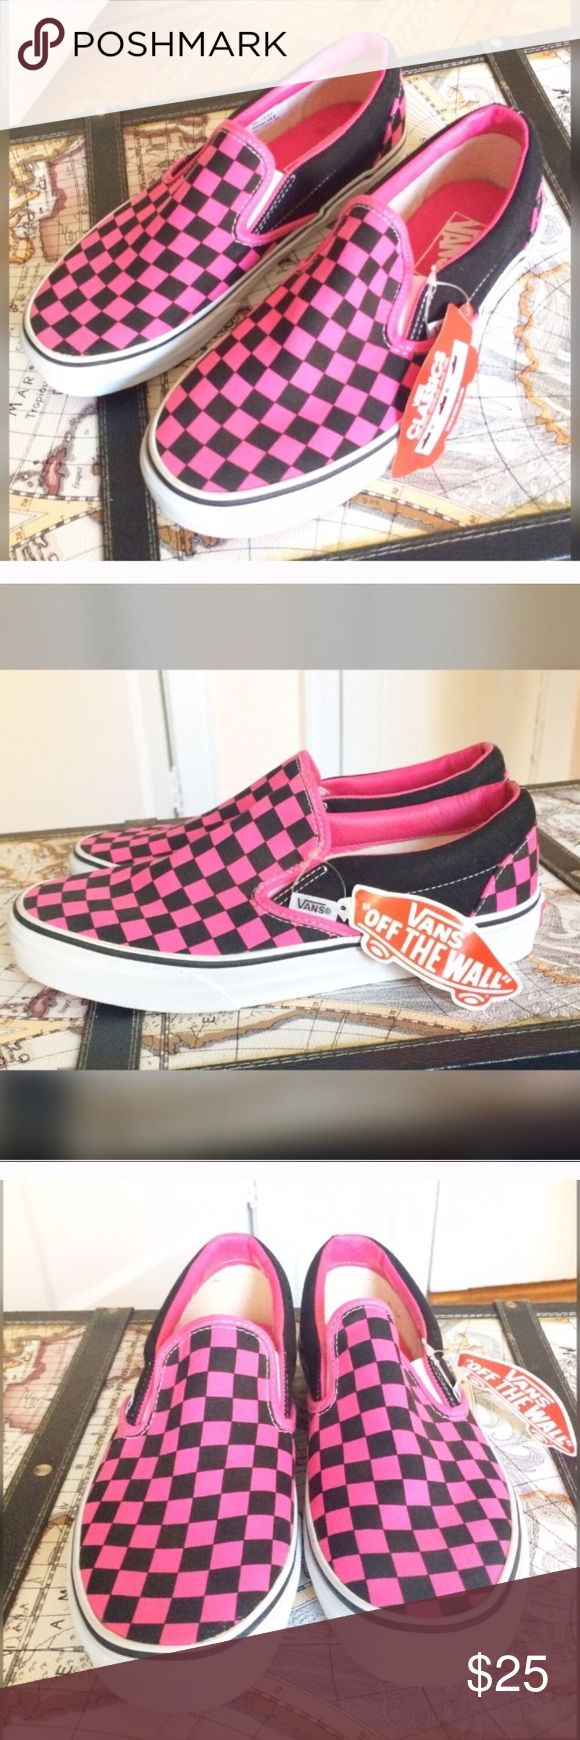 BACK IN Nwt Vans off the wall checker sneakers NWT Vans Off the Wall pink and black checkered sneakers. Various sizes. Vans Shoes Sneakers